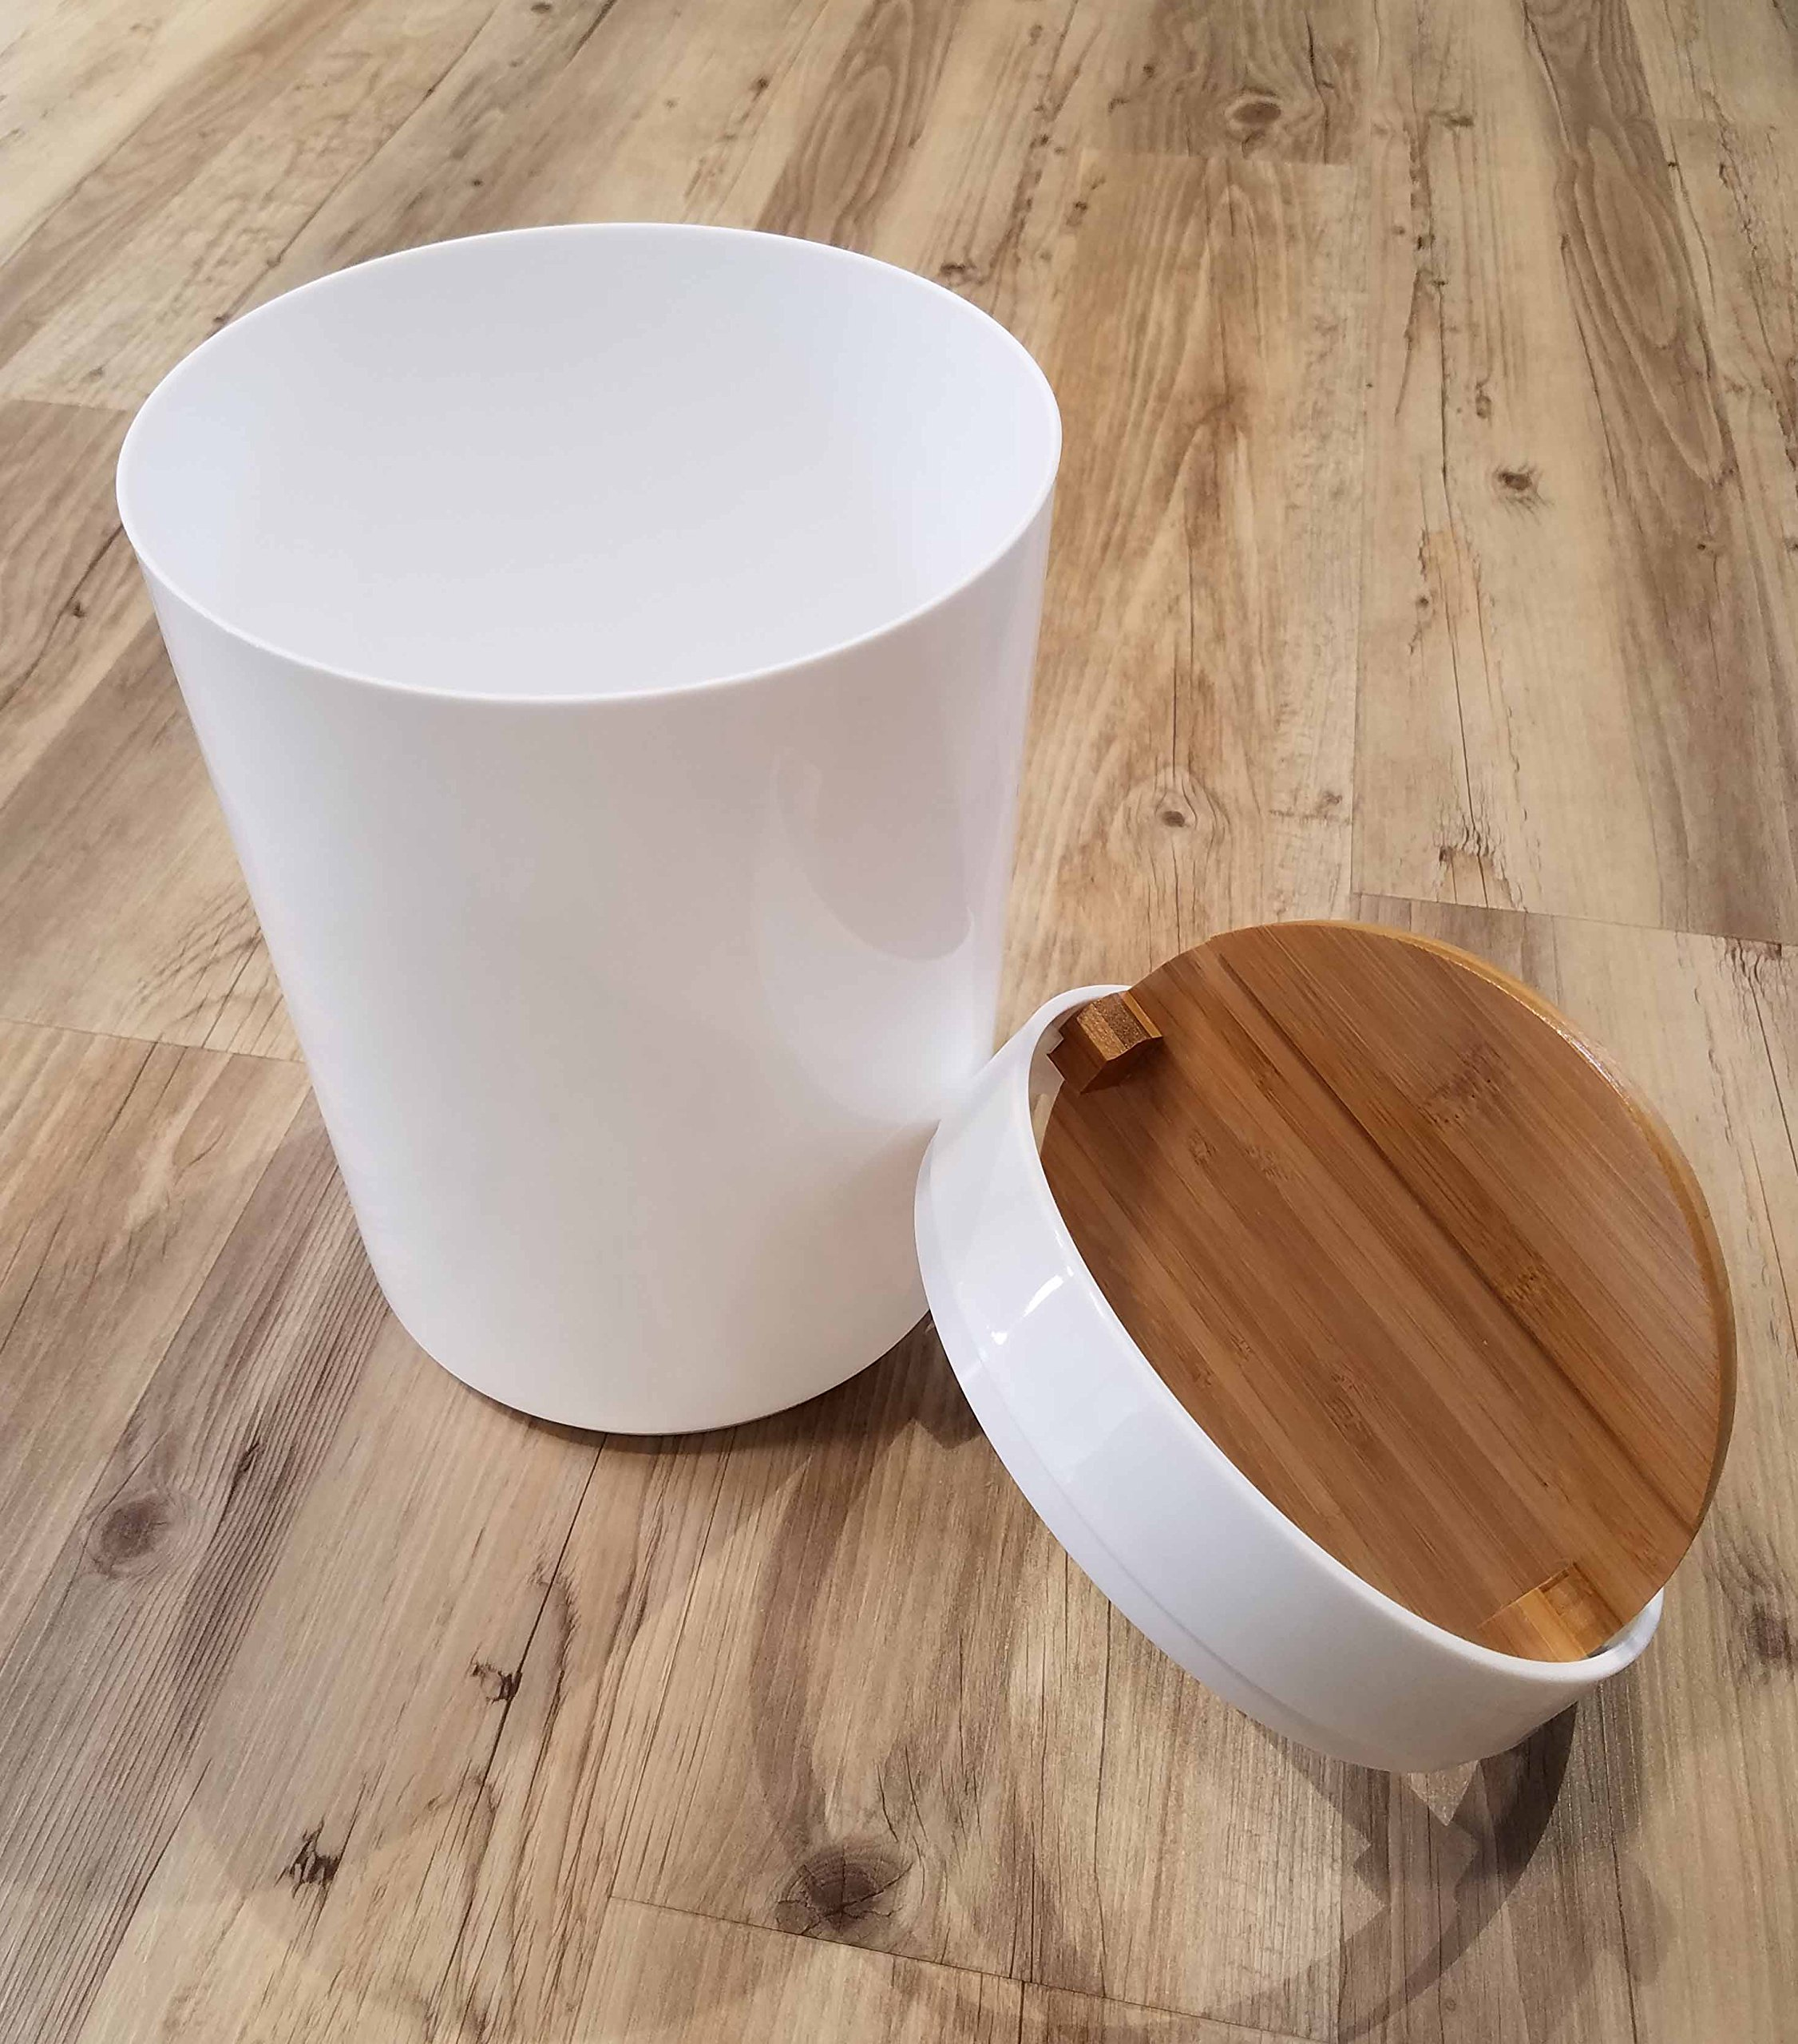 EVIDECO Round Bathroom Floor Trash Can Padang, White/Brown by EVIDECO (Image #5)